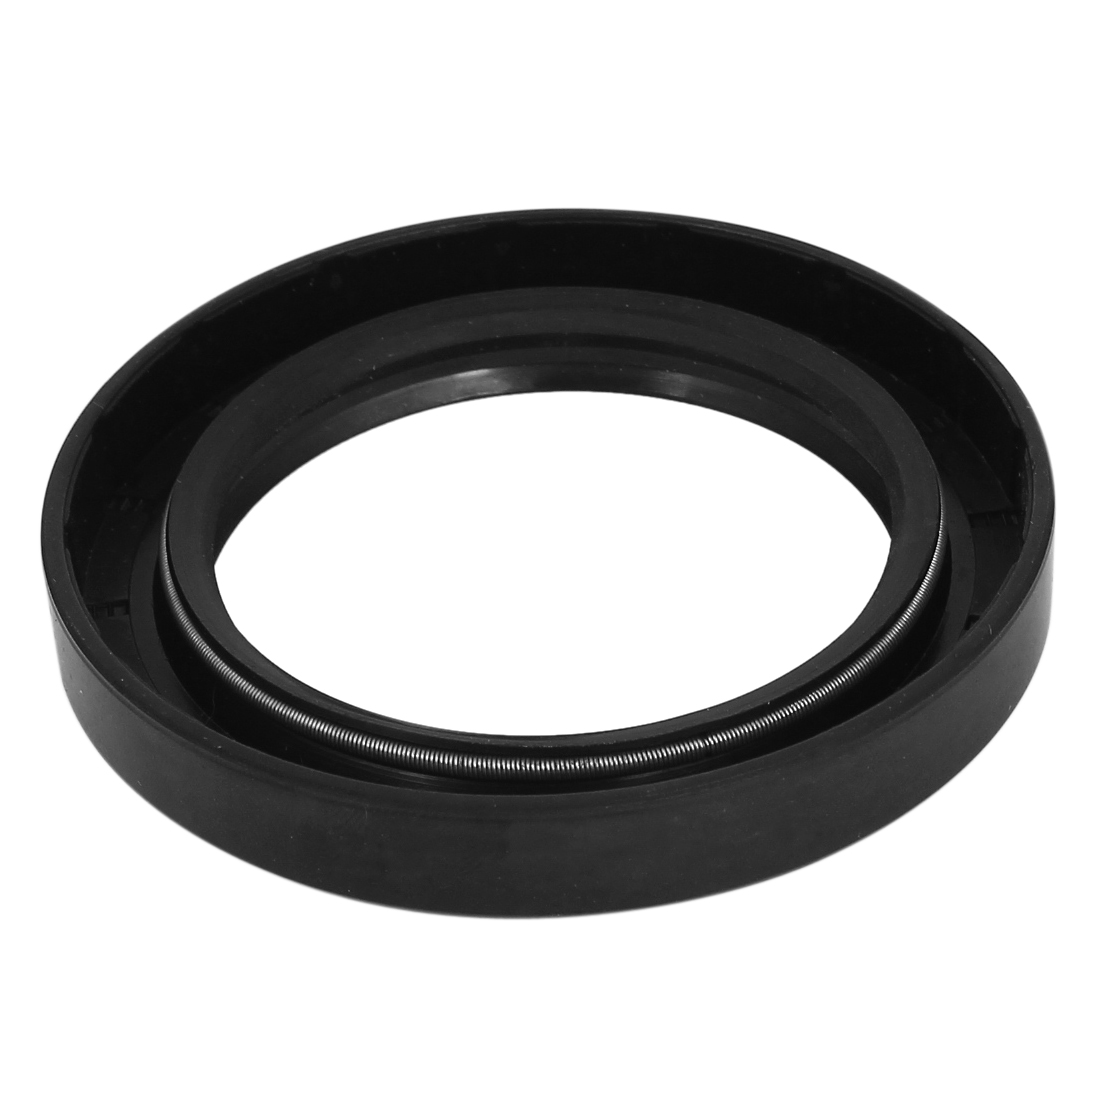 Black 85mm x 60mm x 12mm Rubber Oil Seal Sealing Ring Gasket Washer